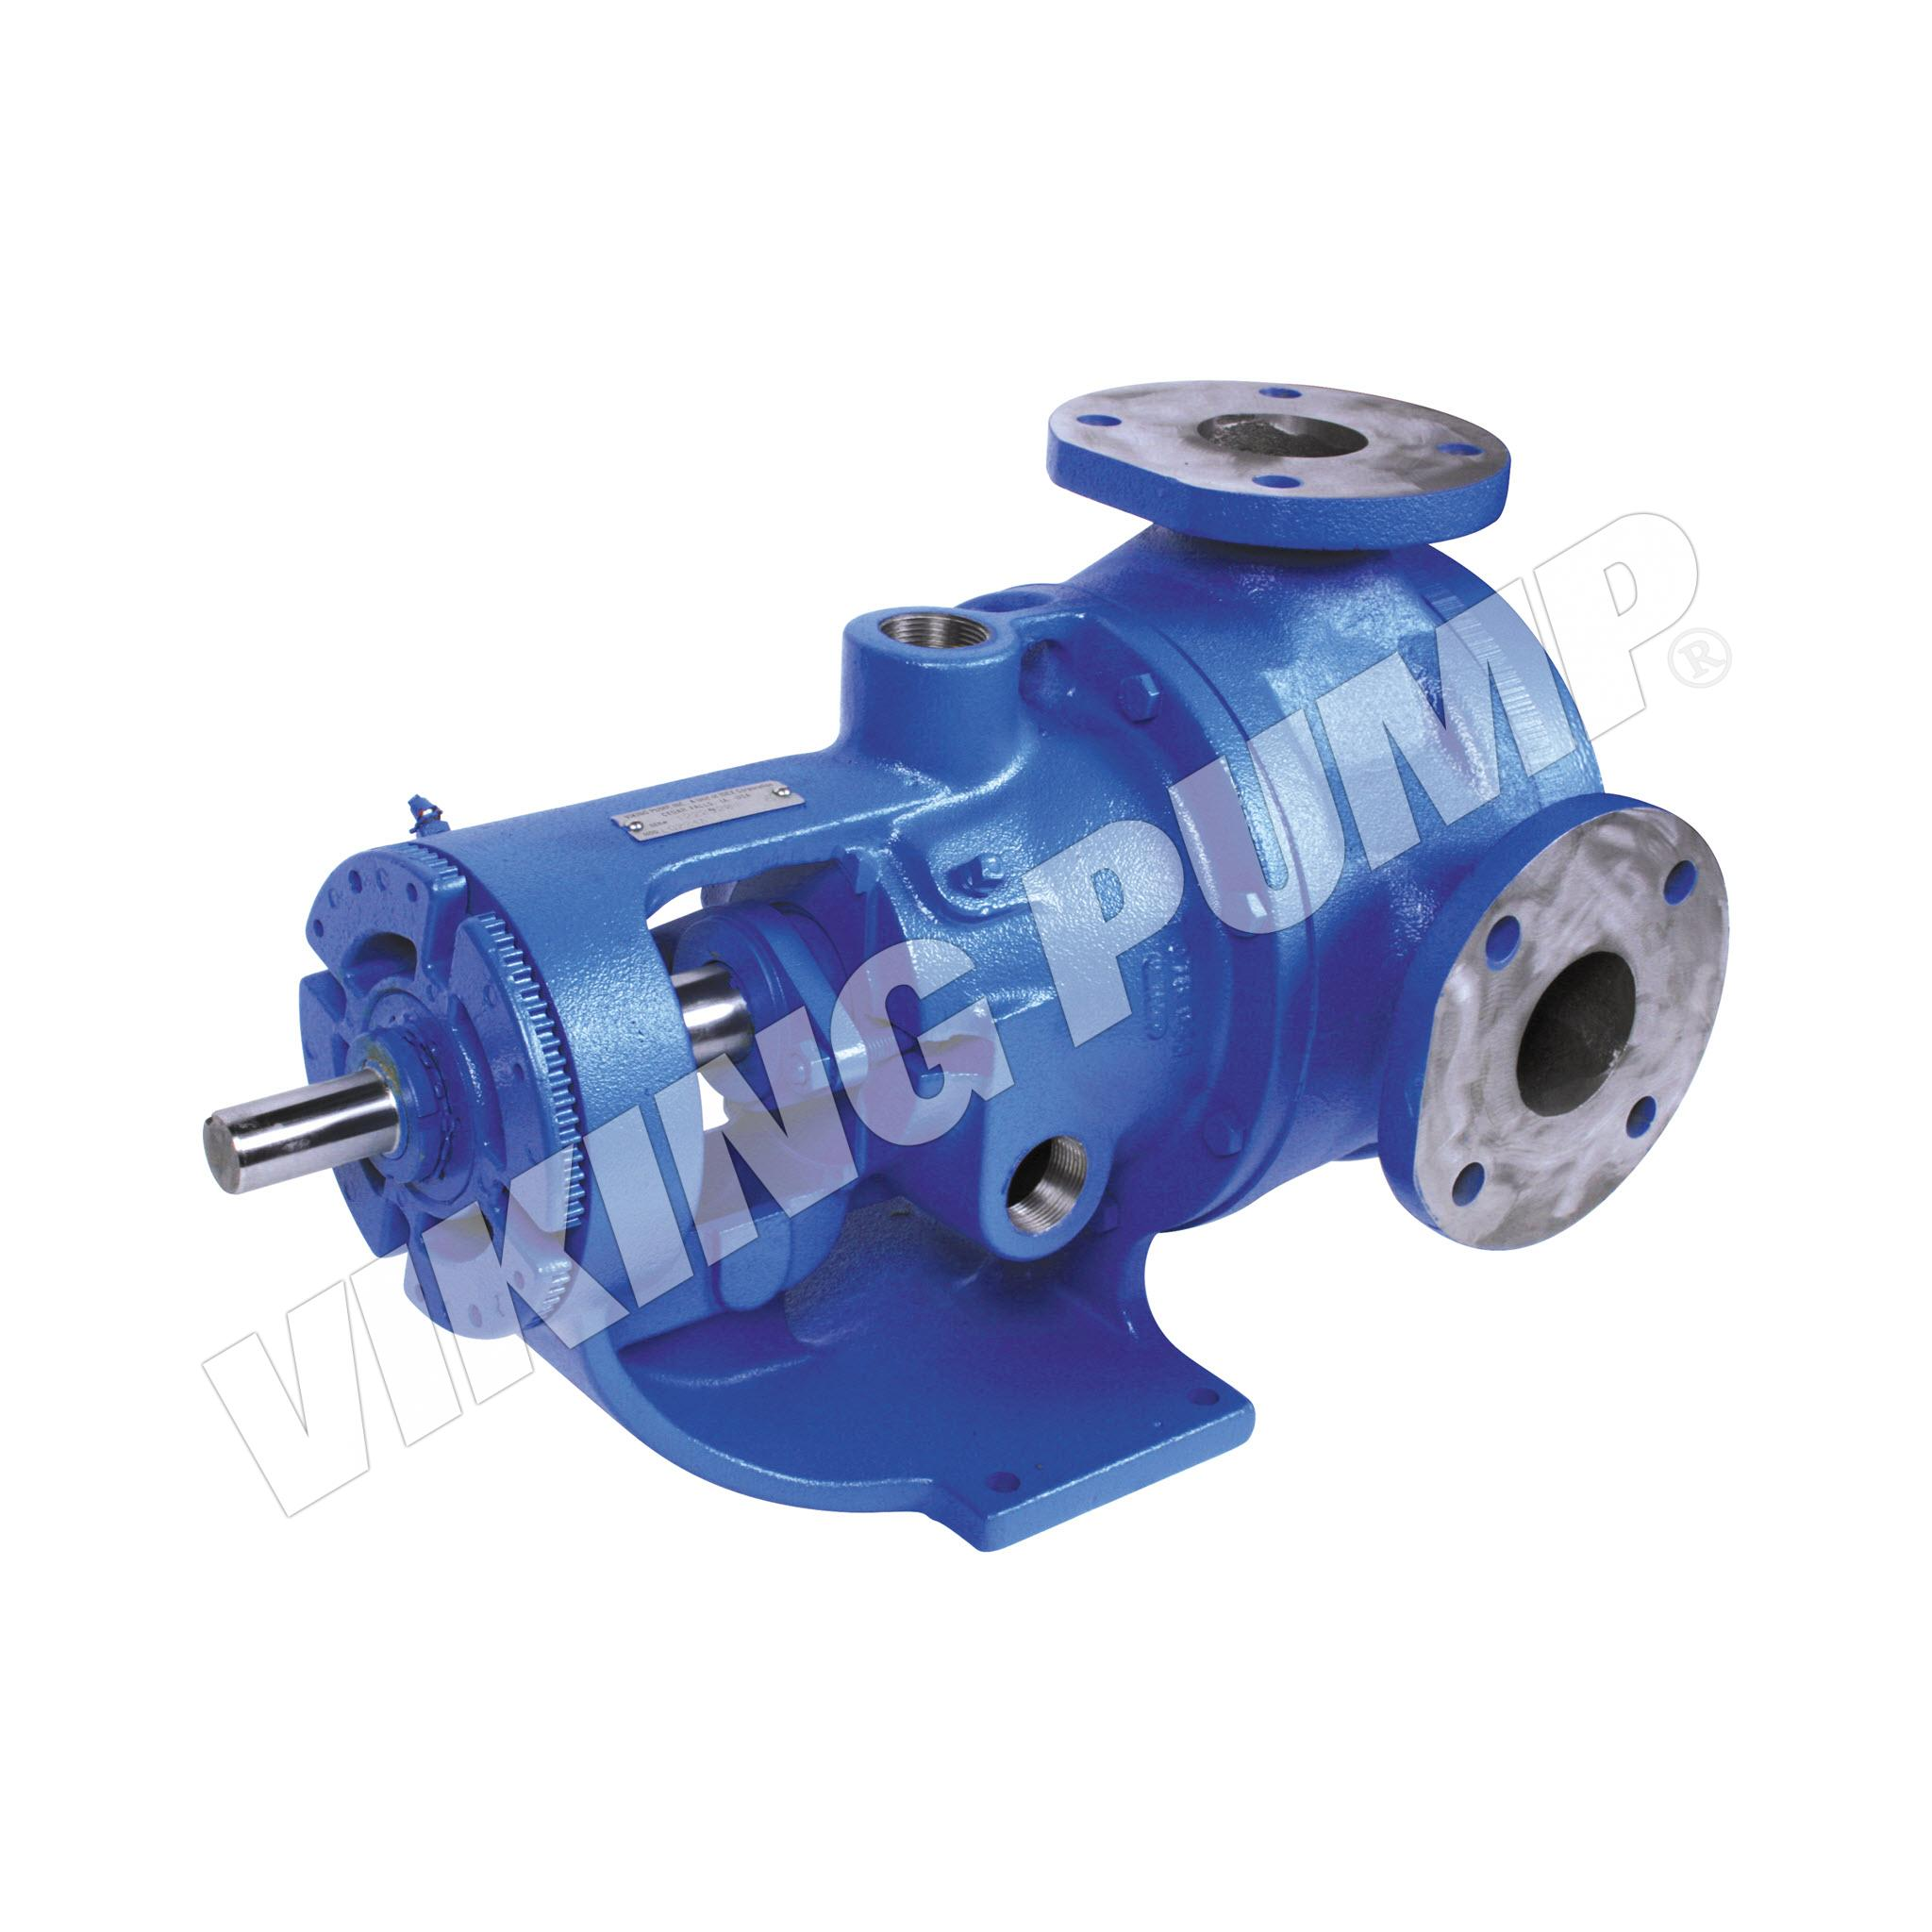 Model LQ224AE, Foot Mounted, Packed Gland, less Relief Valve, Flange Port Pump